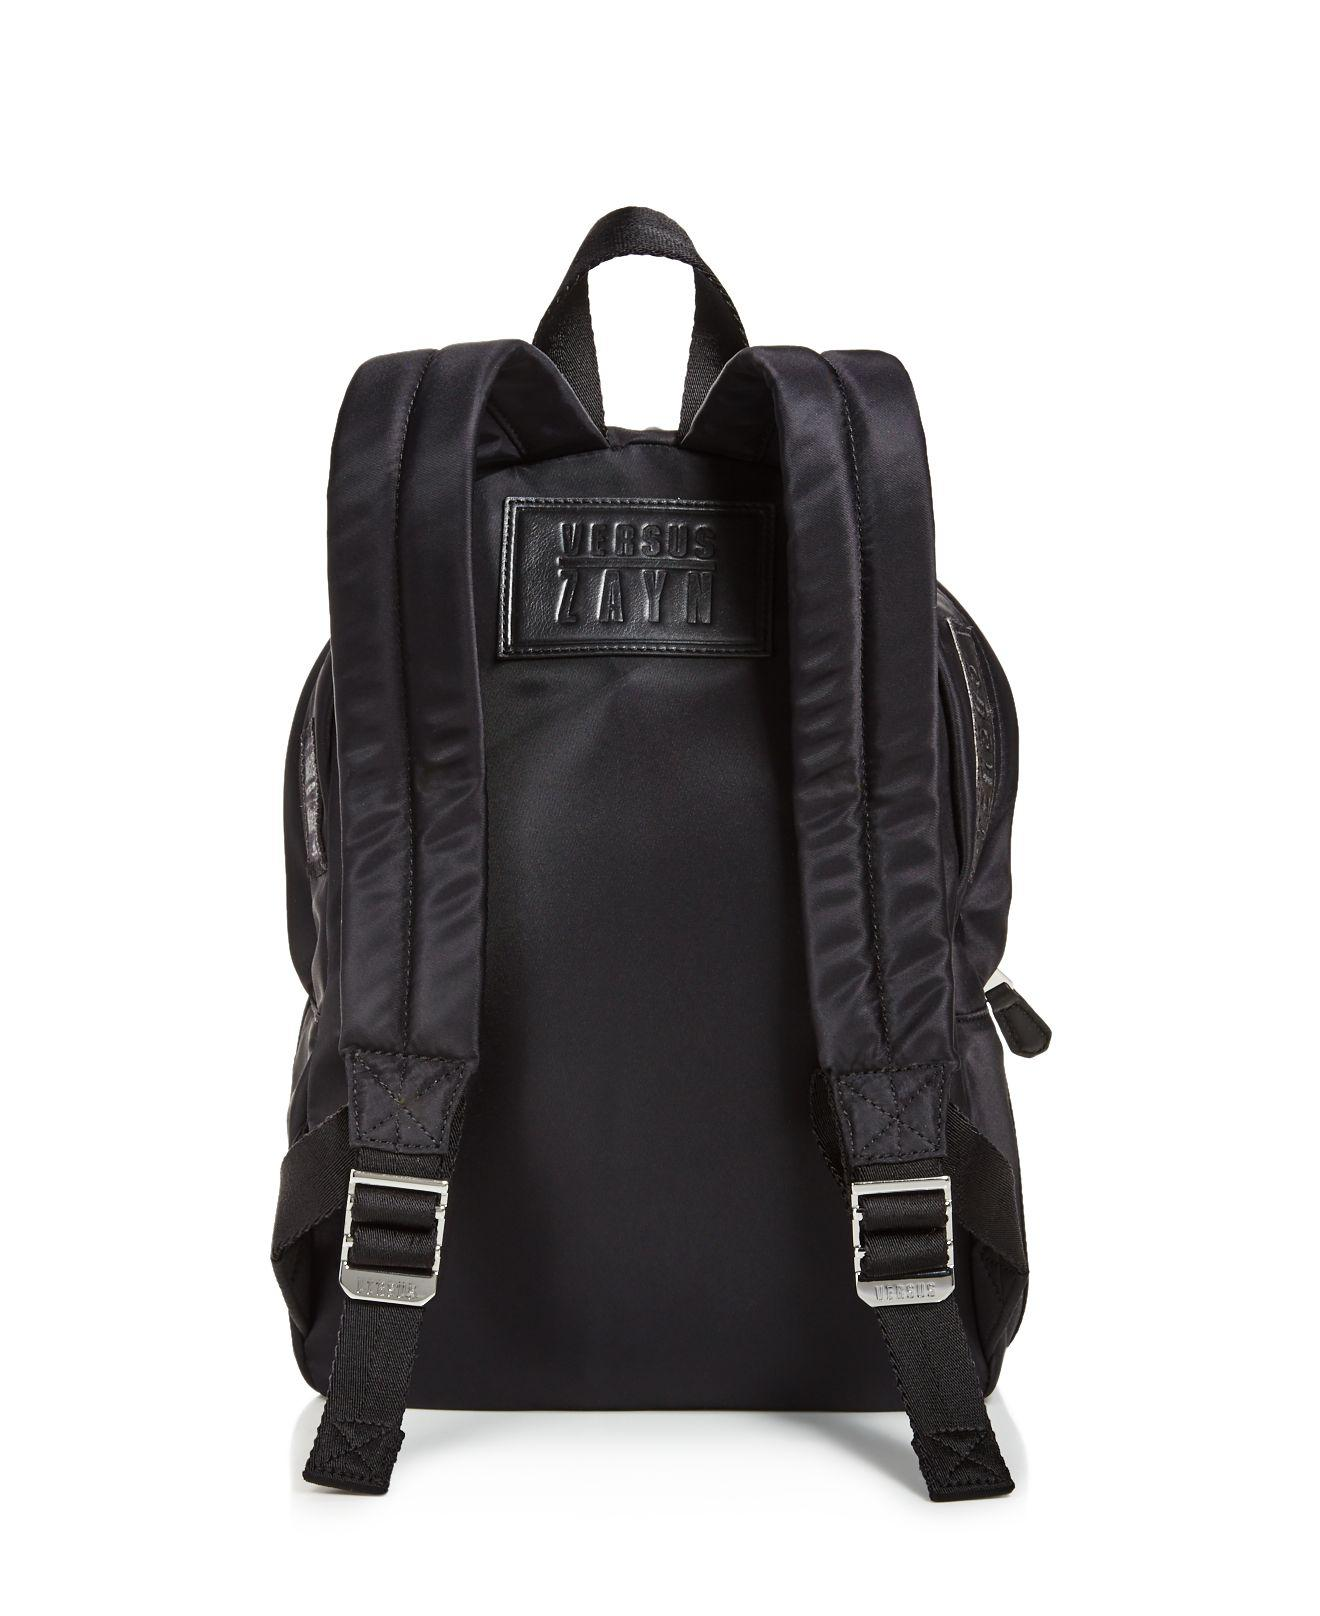 6fb77774aaf1 Lyst - Versus Zayn X Versus Mini Backpack in Black for Men